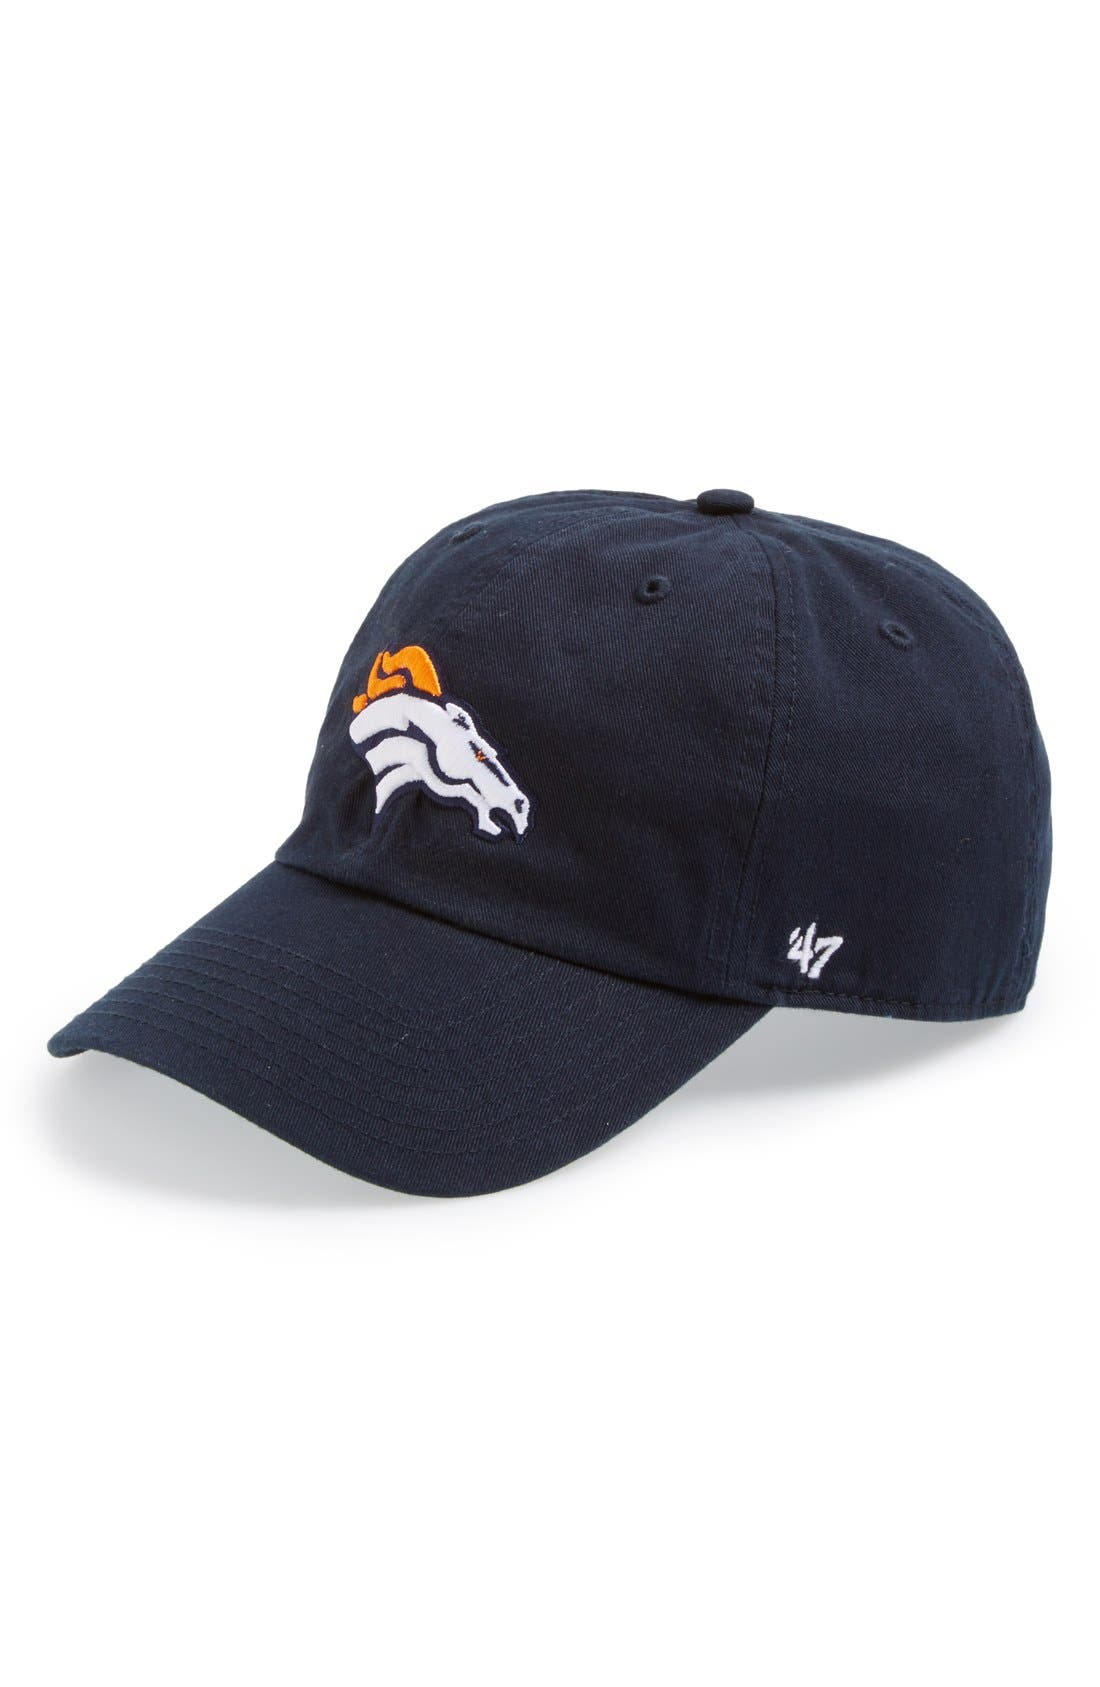 47 47 Brand Denver Broncos - Clean Up Cap